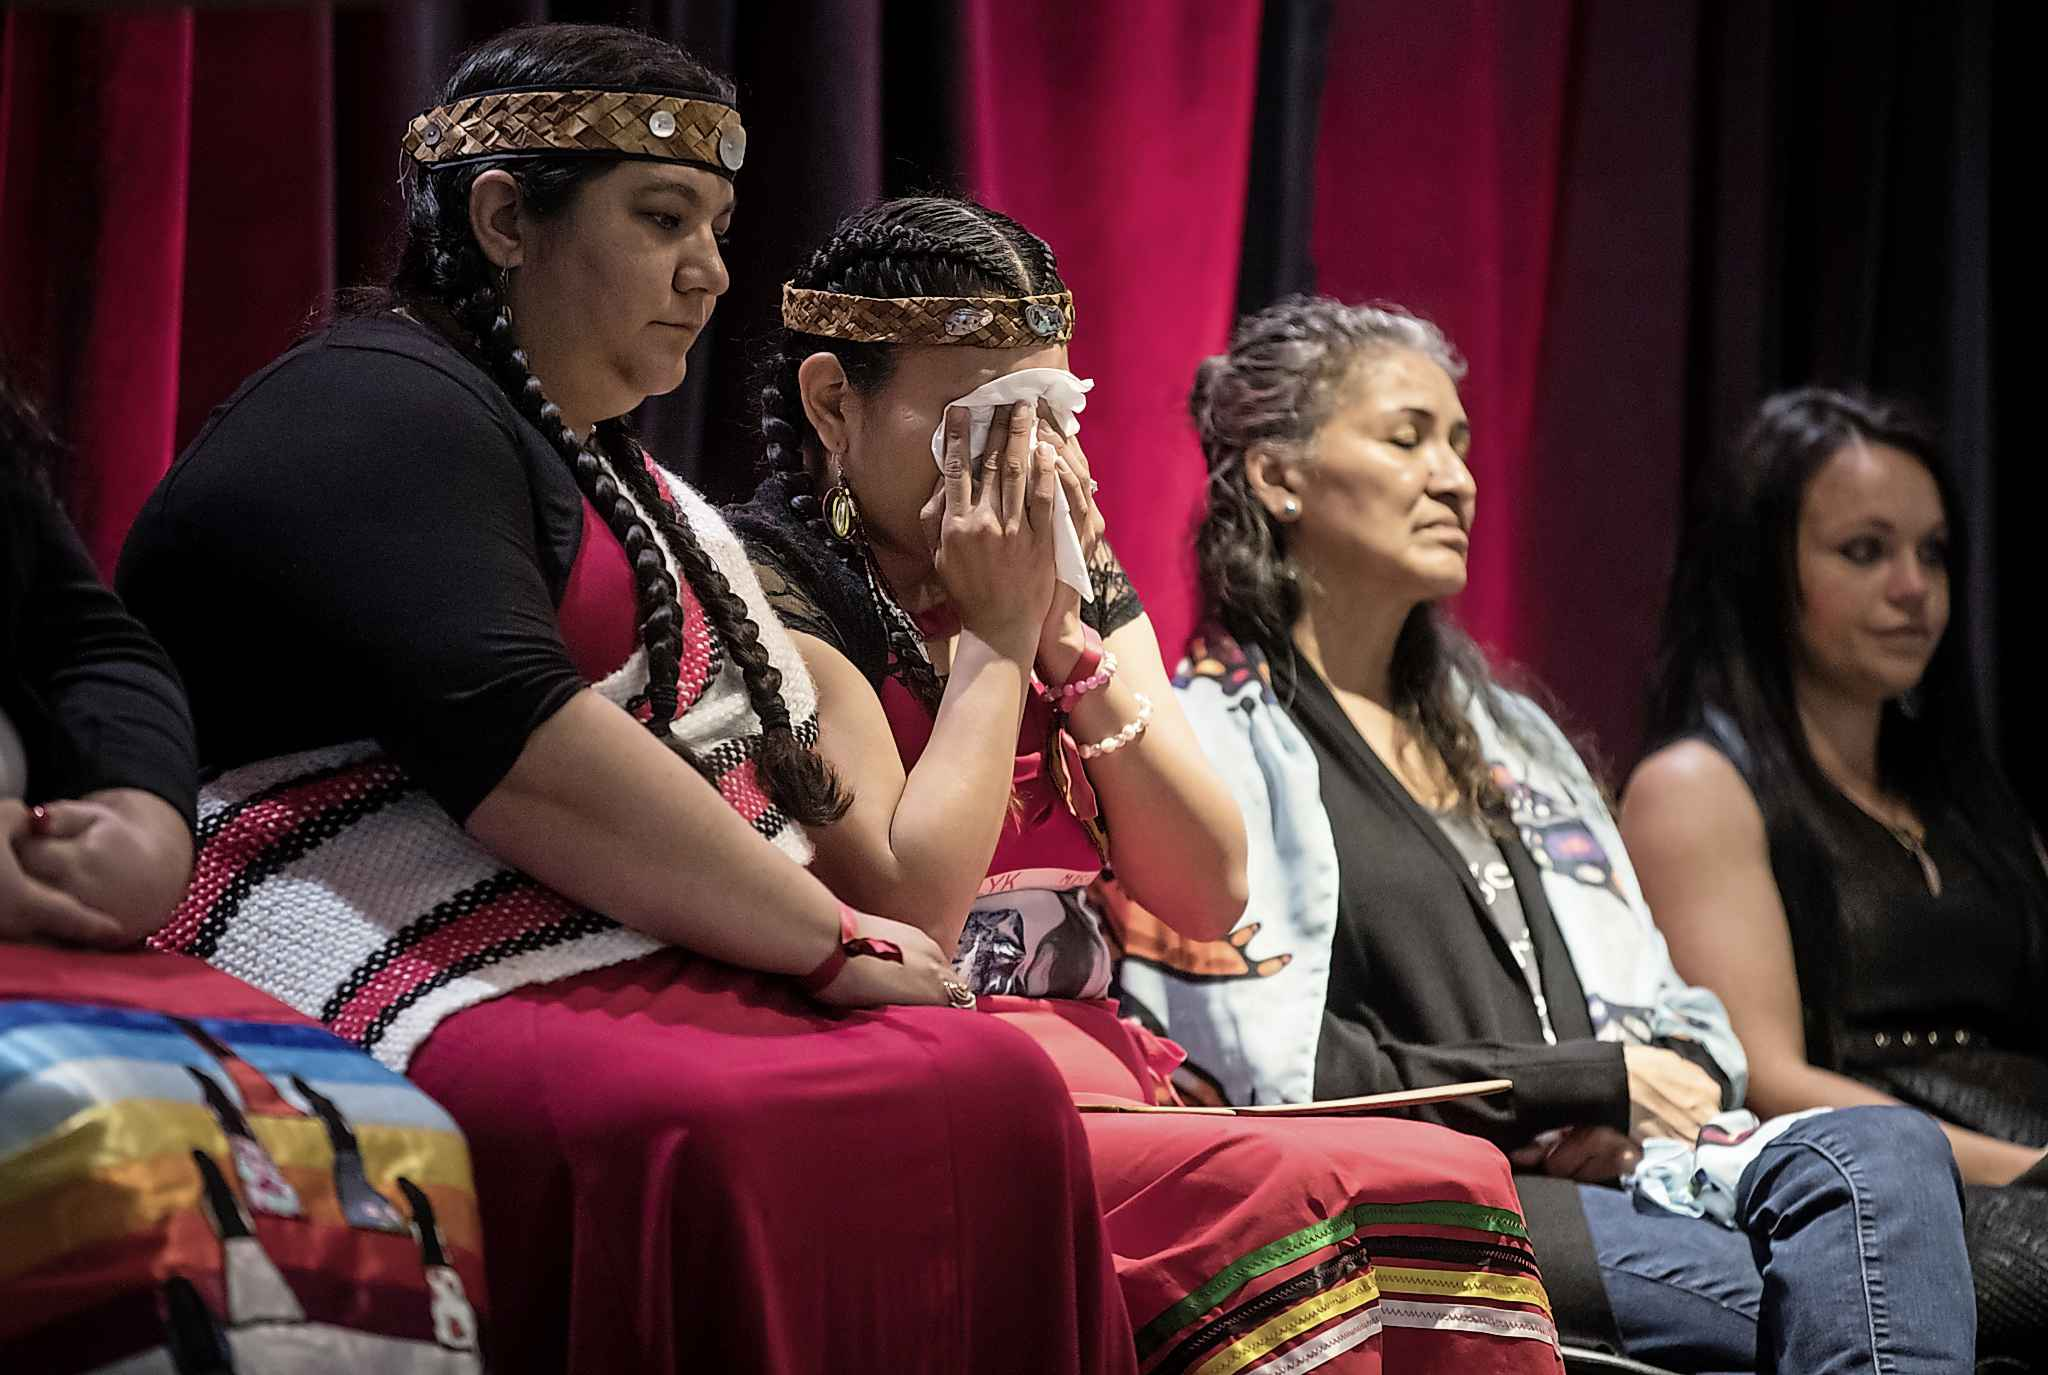 Lorelei Williams (second left) whose cousin Tanya Holyk was murdered by serial killer Robert Pickton and whose aunt Belinda Williams went missing in 1978, wipes away tears while seated with Rhiannon Bennett (from left), Sophie Merasty and Summer Rain Bentham at the released of the report on the National Inquiry into Missing and Murdered Indigenous Women and Girls. (Darryl Dyck / The Canadian Press files)